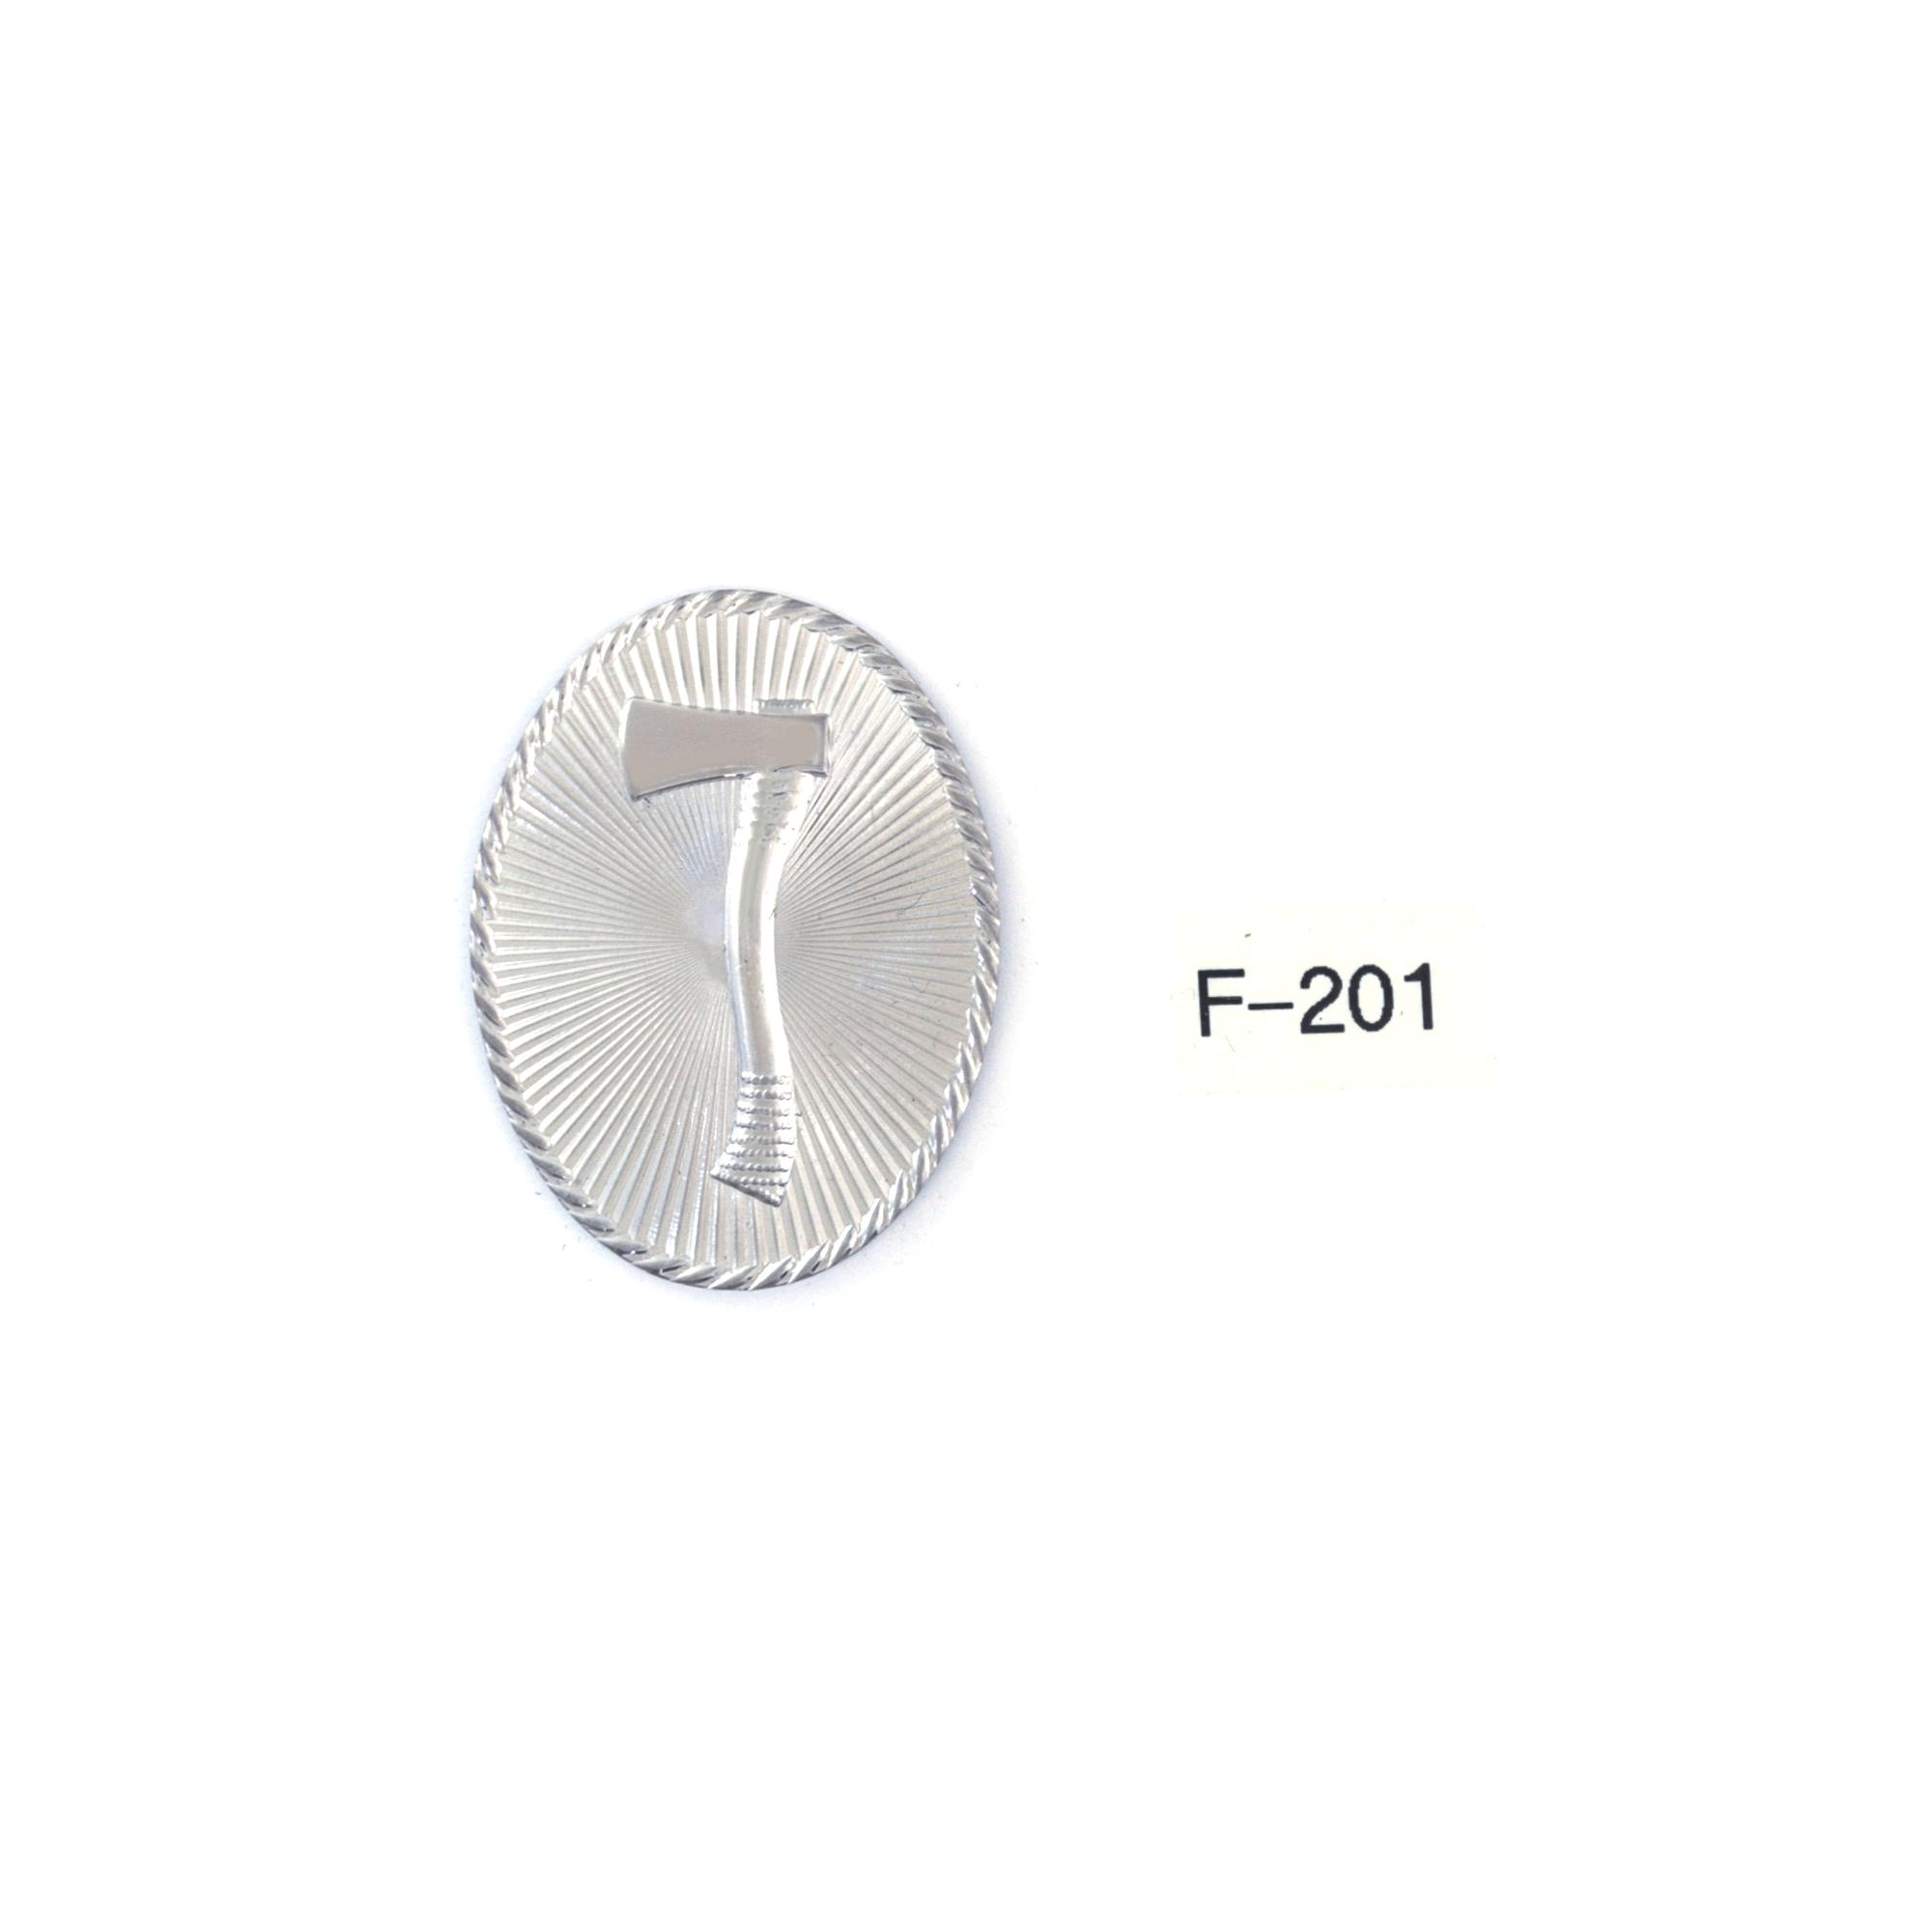 F201 (1 upright ax oval)-CW Nielsen